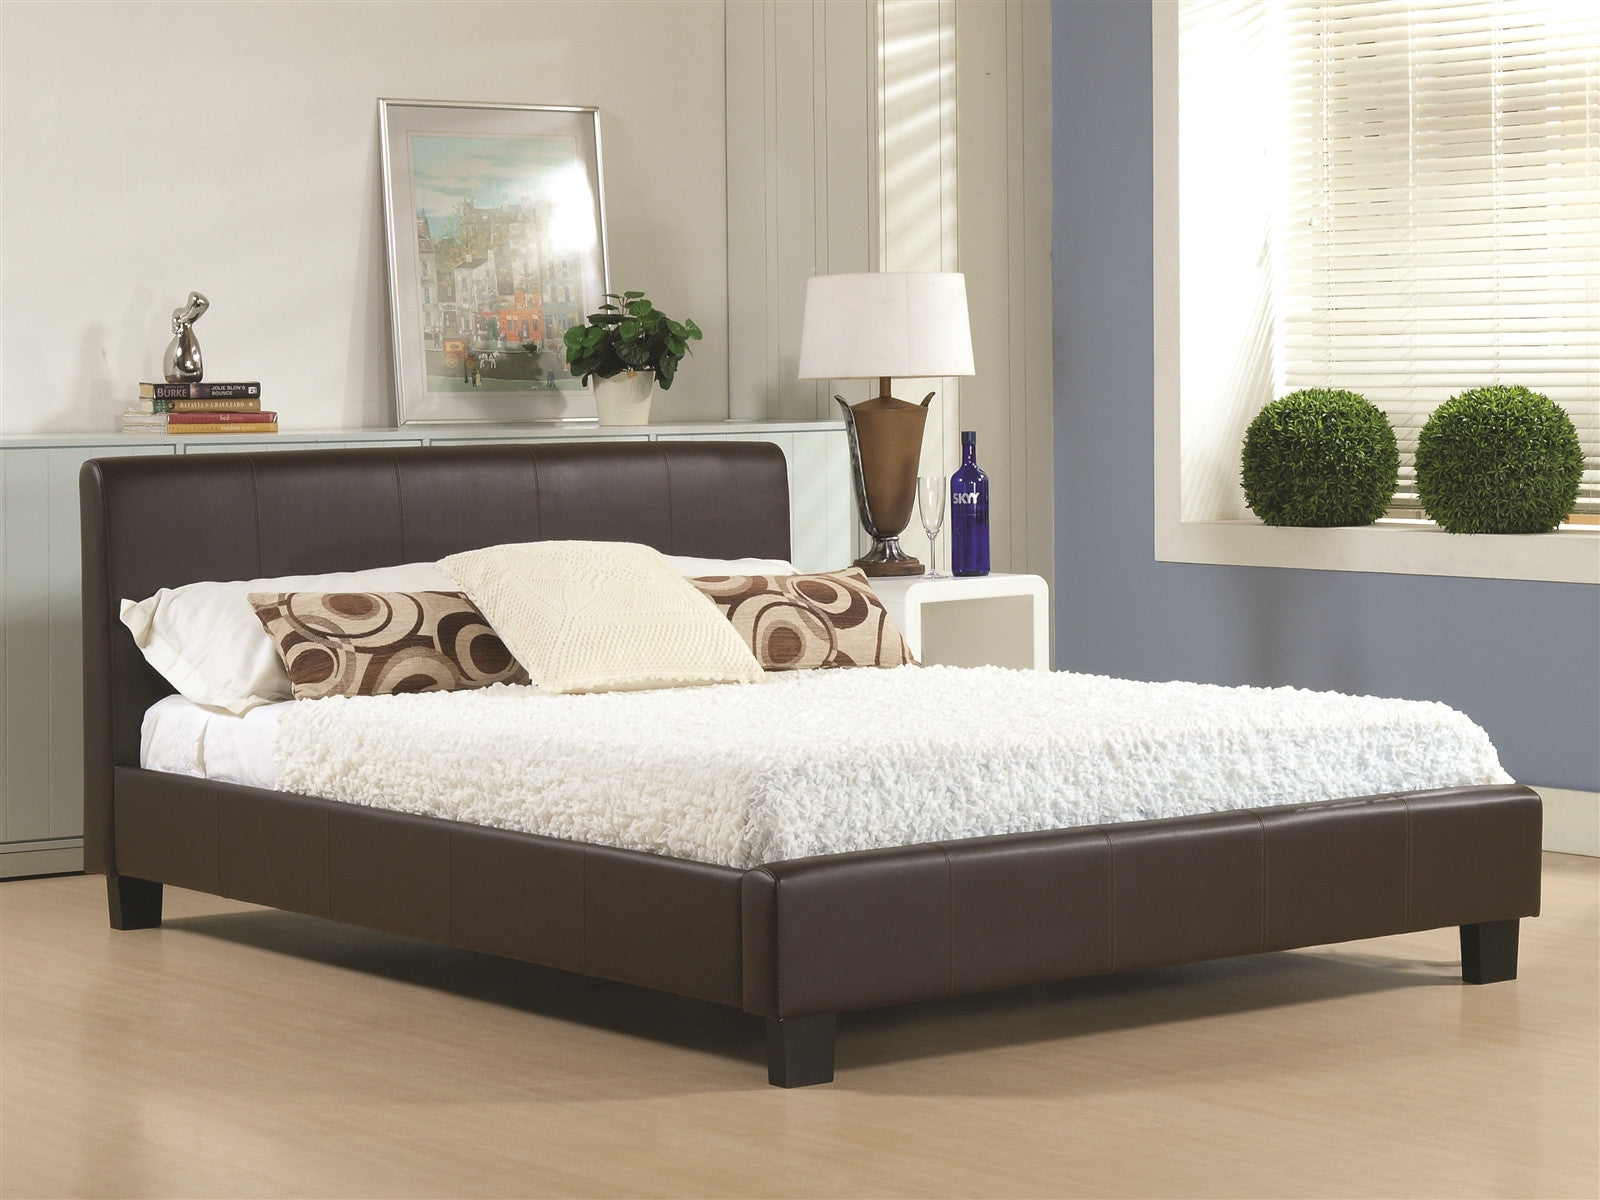 Hamburg Bed in Brown Real Leather